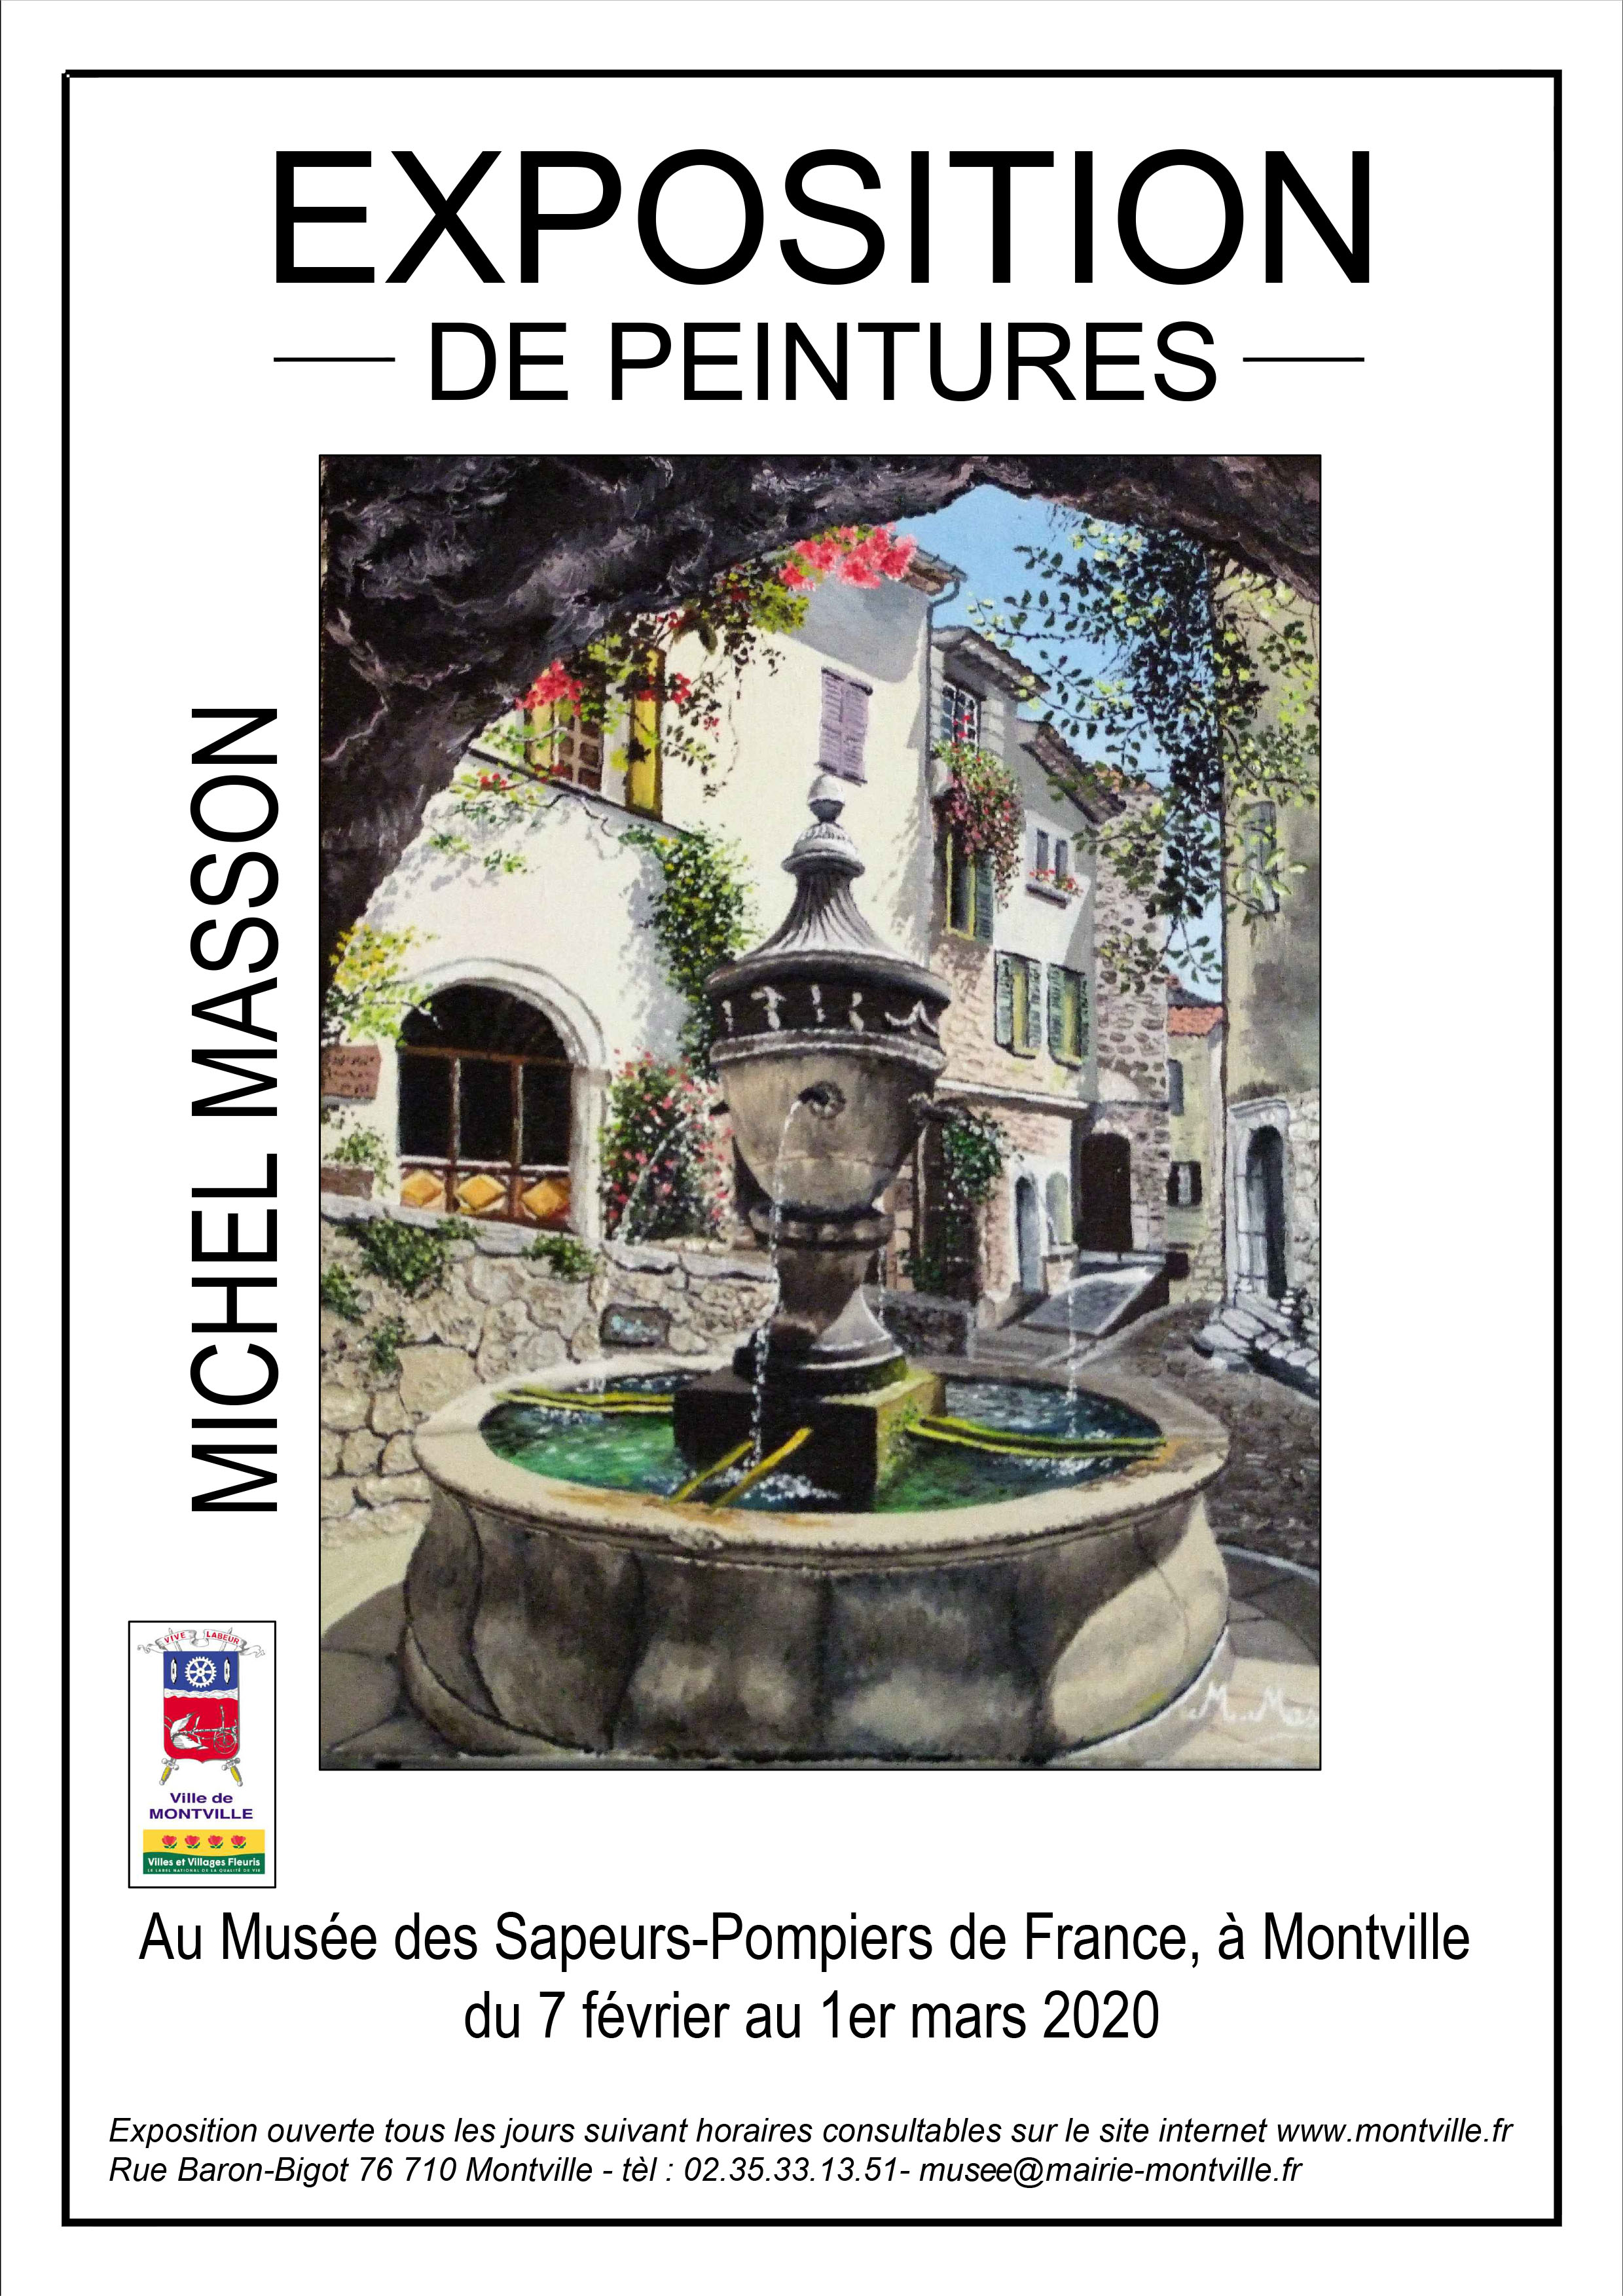 Exposition de peintures de Michel Masson